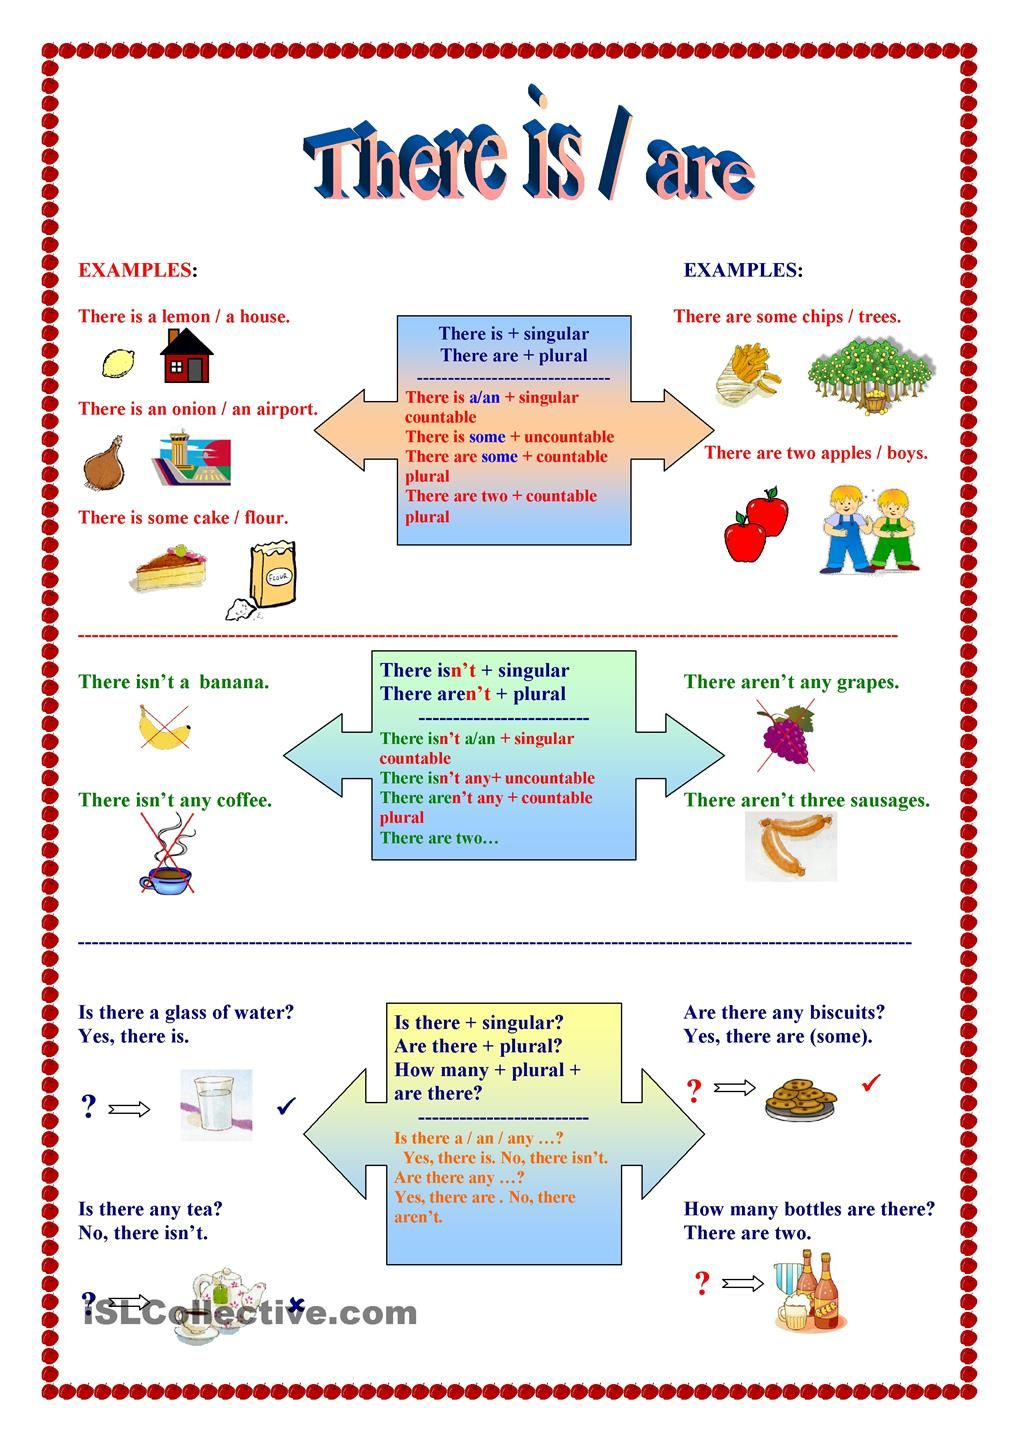 There is/are + food | FREE ESL worksheets | 6th grade english ...